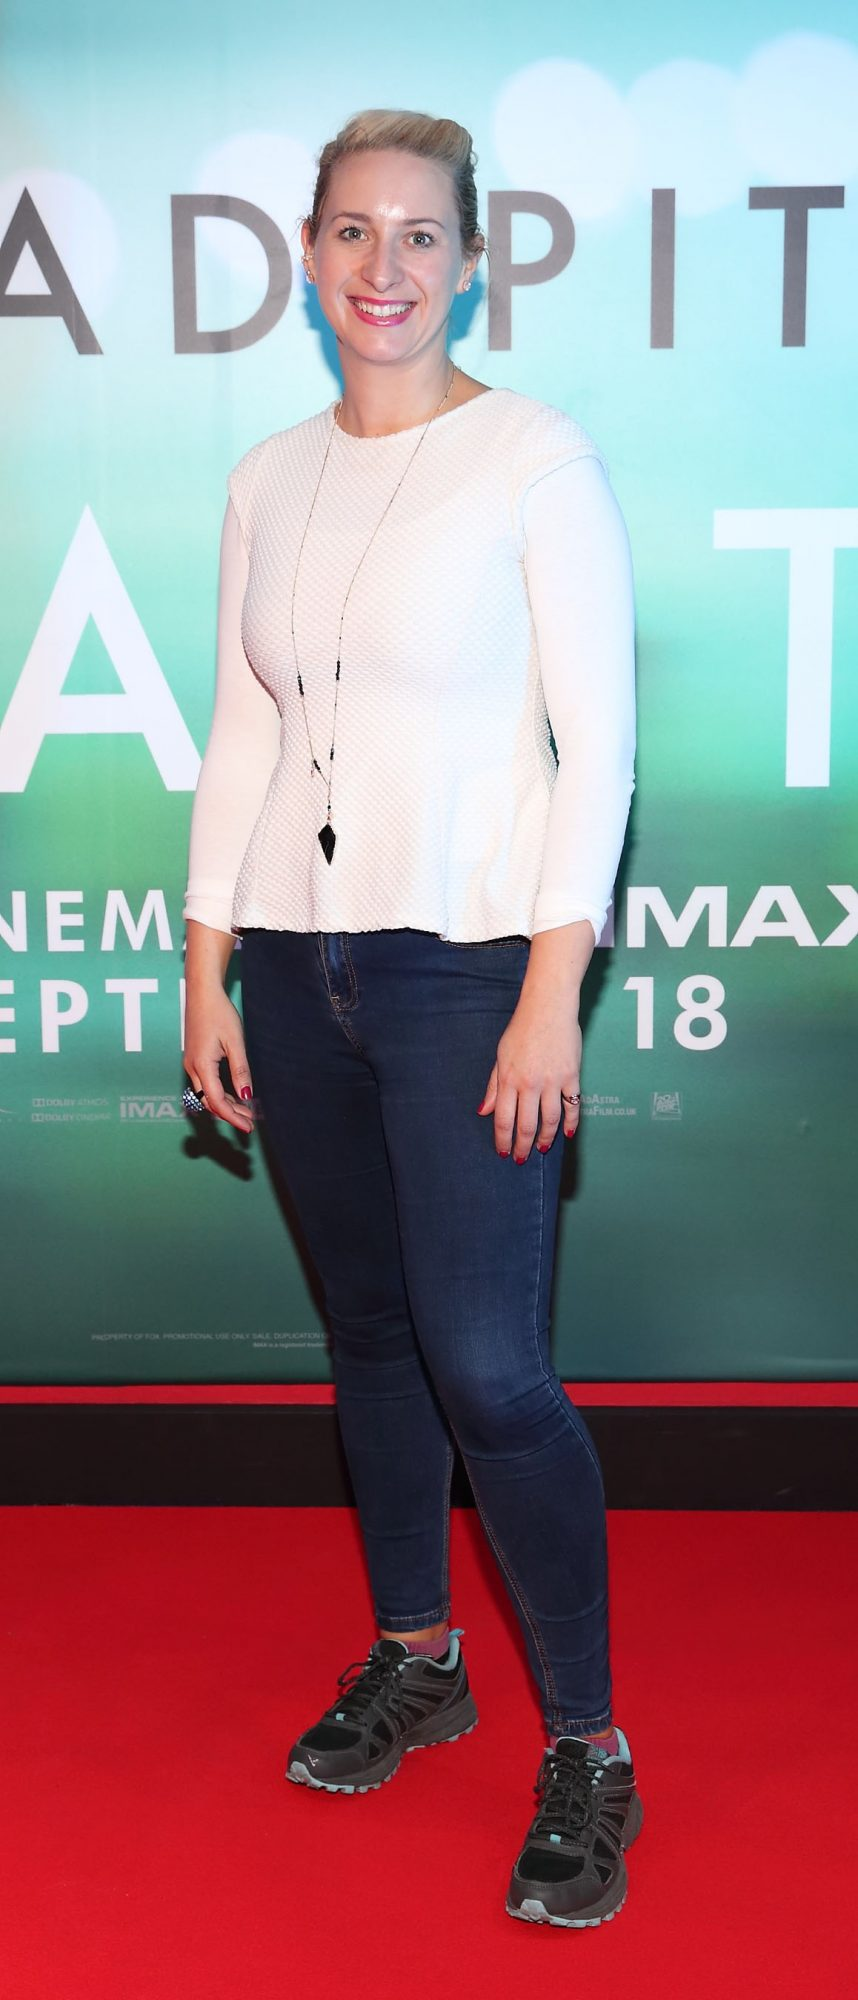 Emily Barton at the special preview screening of Ad Astra at Cineworld, Dublin. Pic: Brian McEvoy Photography